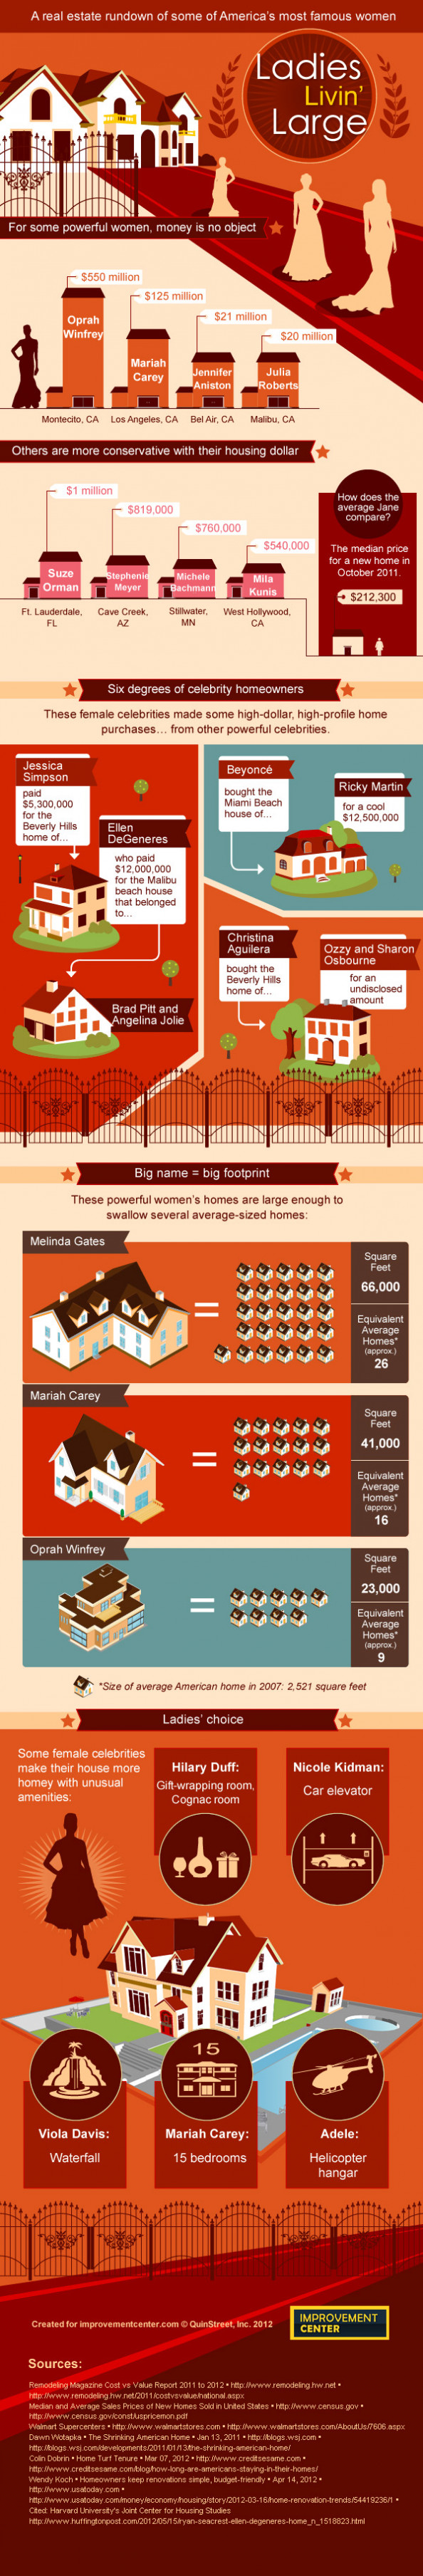 Ladies Livin' Large: Female Celebrities and Their Lavish Homes Infographic